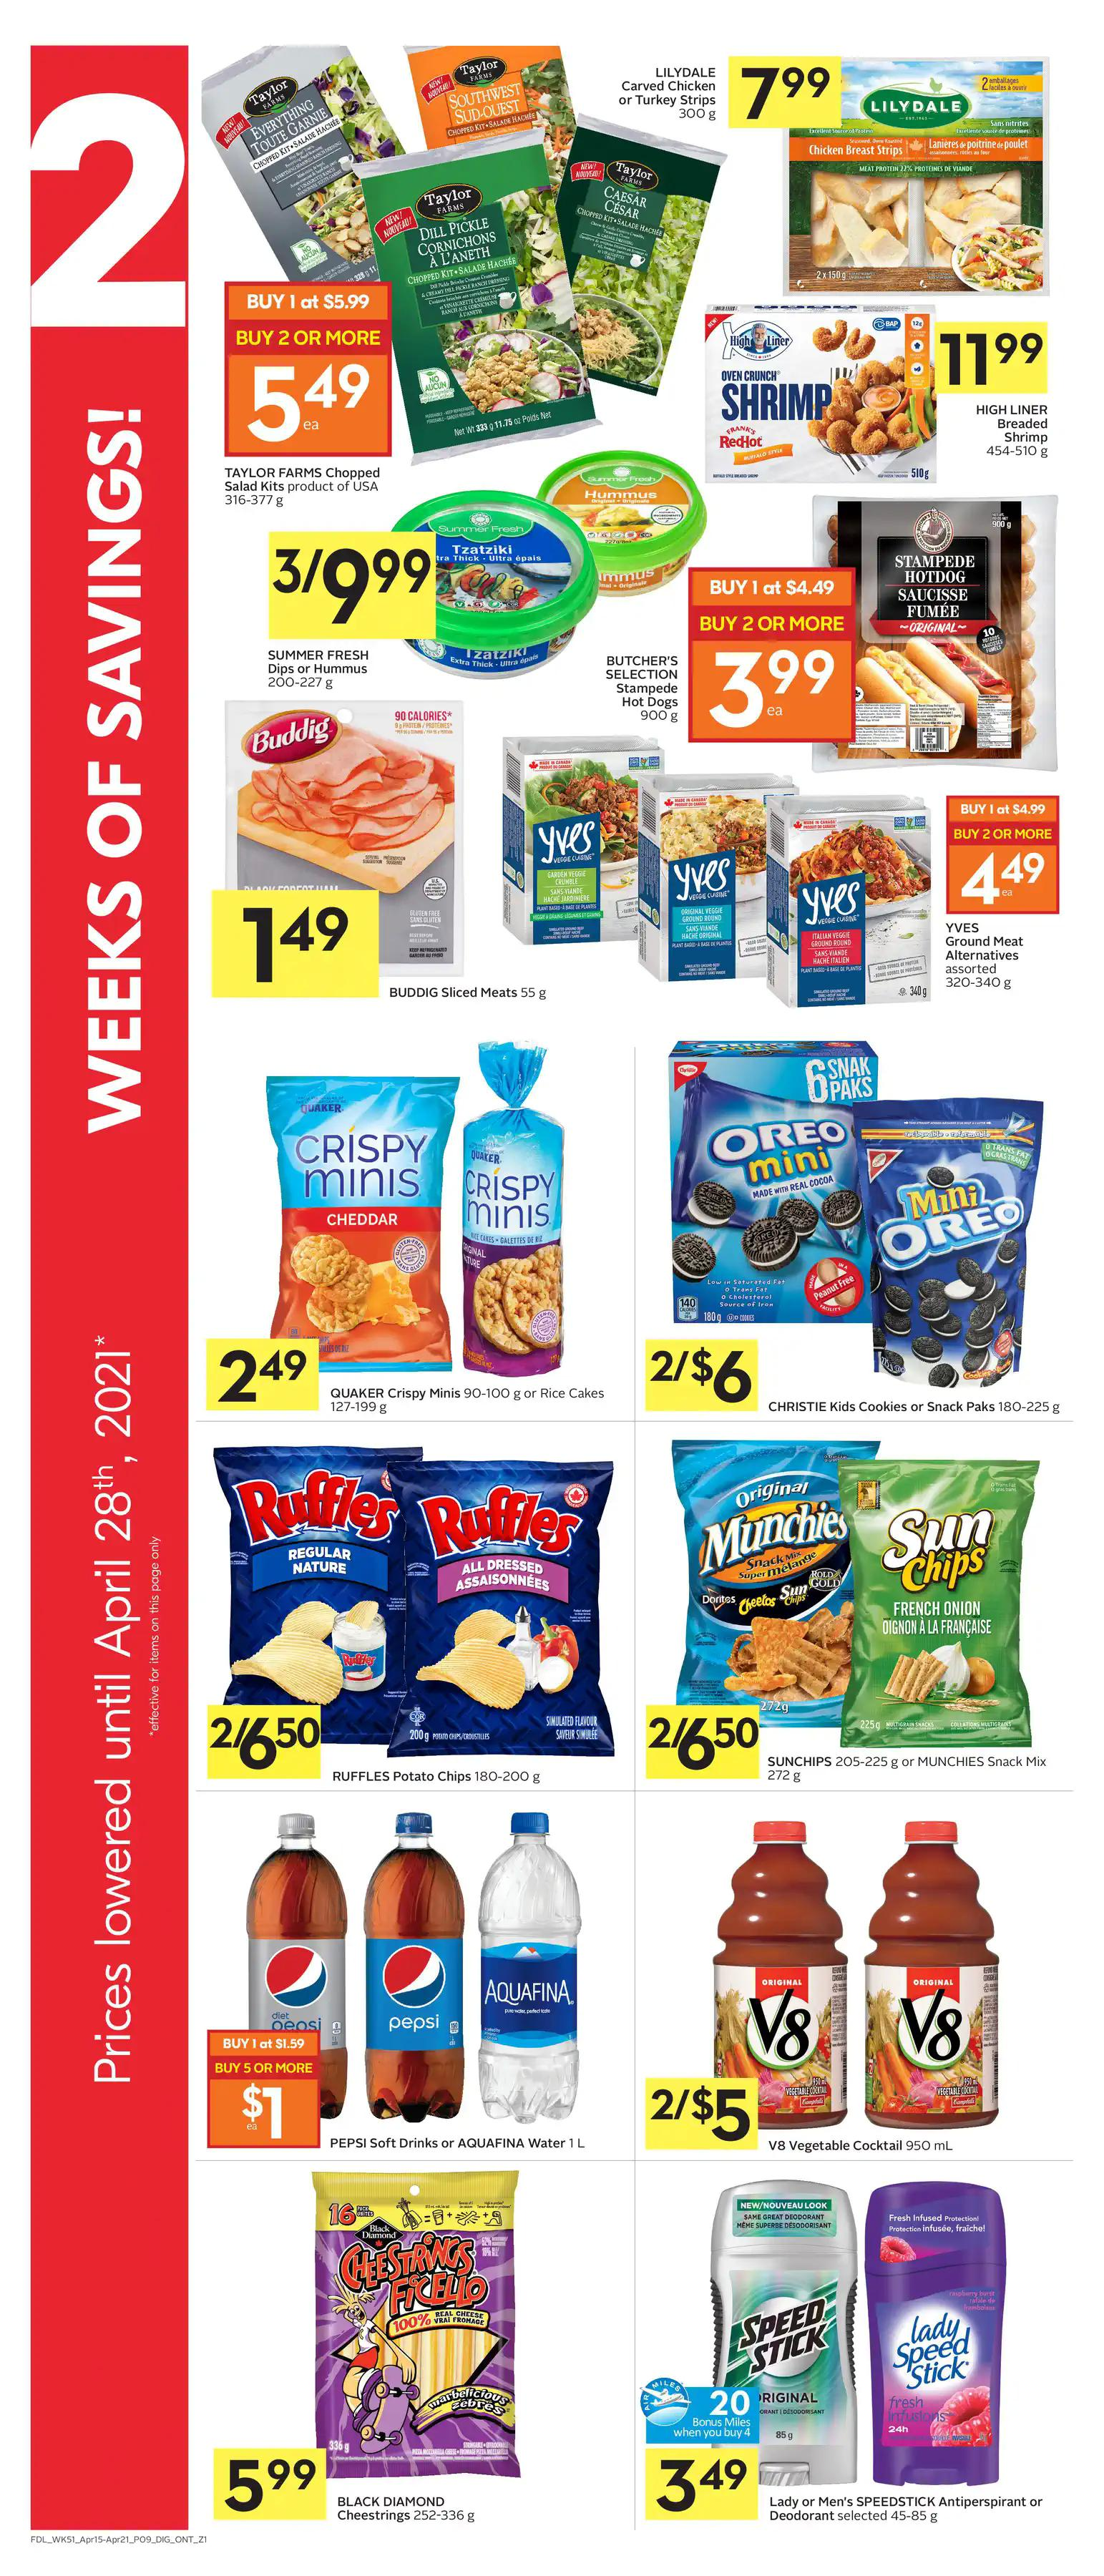 Foodland - Weekly Flyer Specials - Page 9